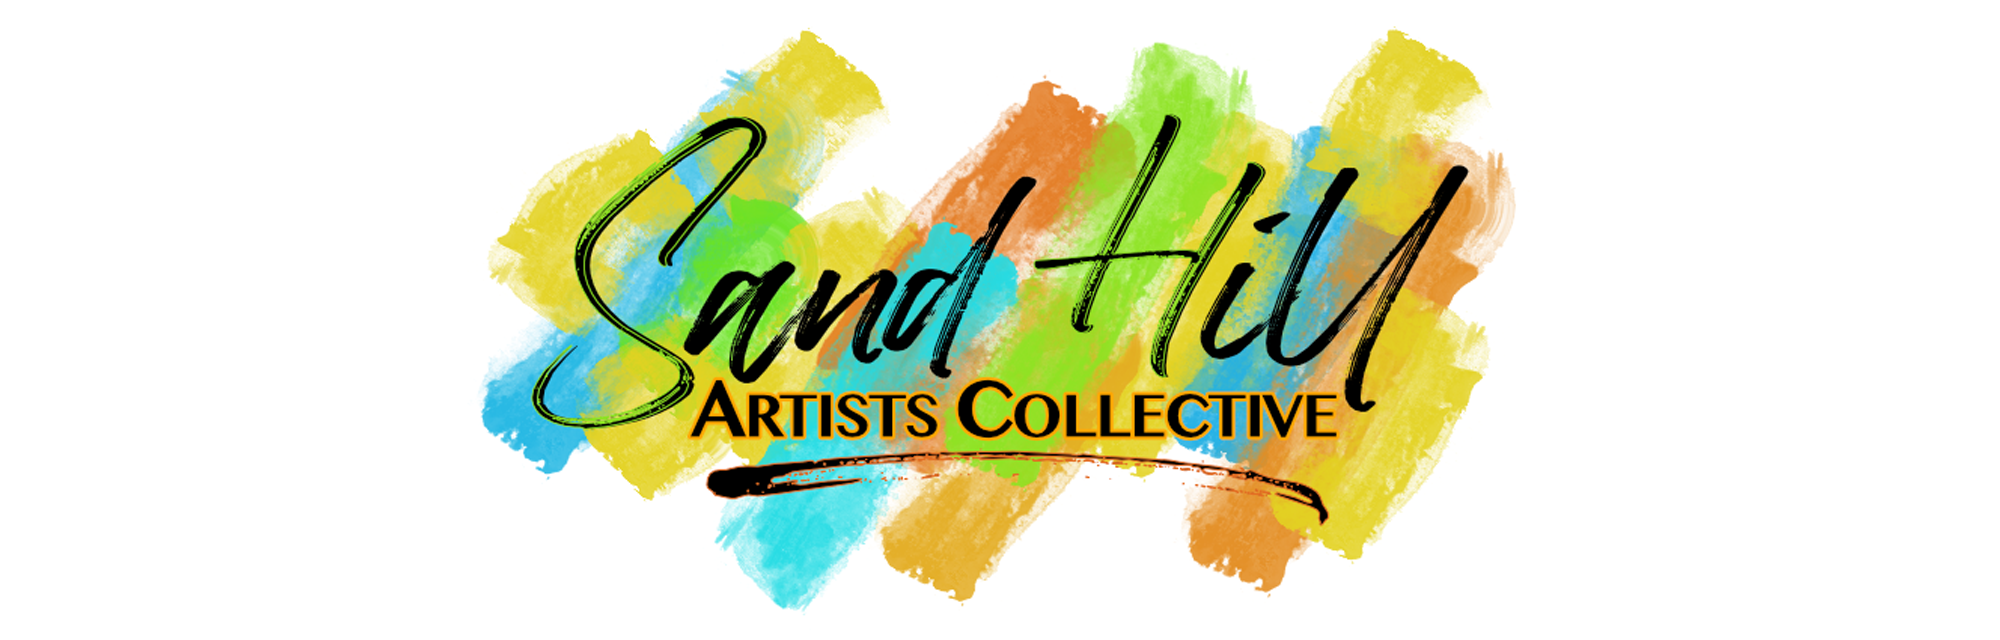 Sand Hill Artists Collective